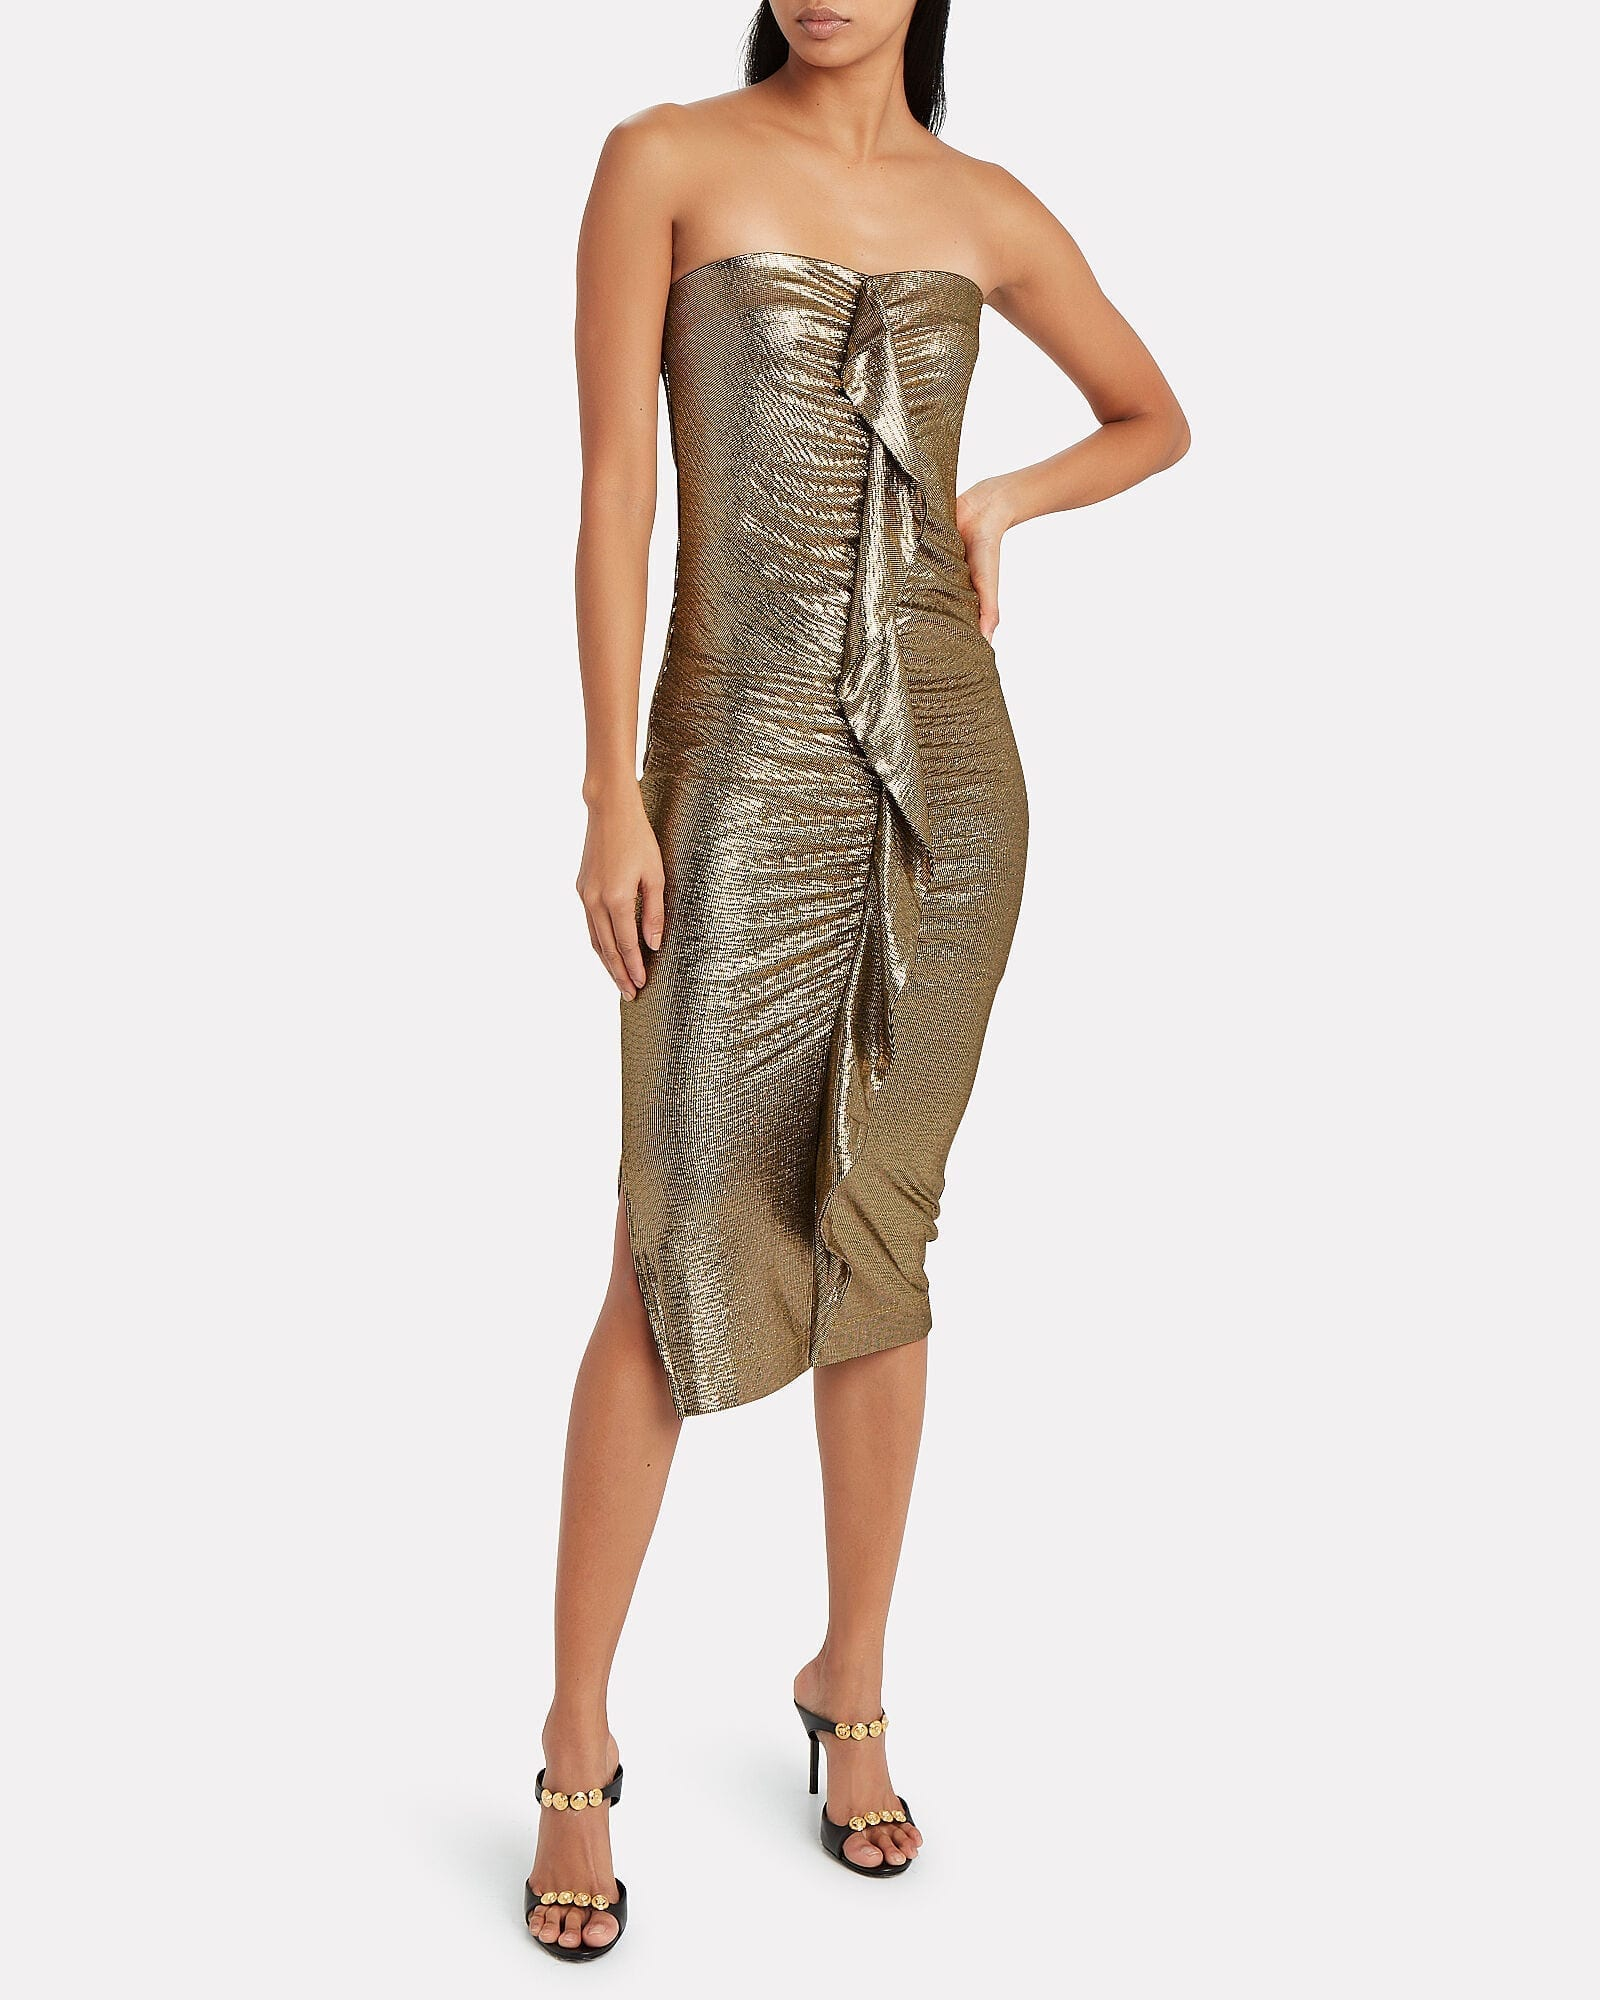 MELISSA ODABASH Dru Strapless Metallic Dress